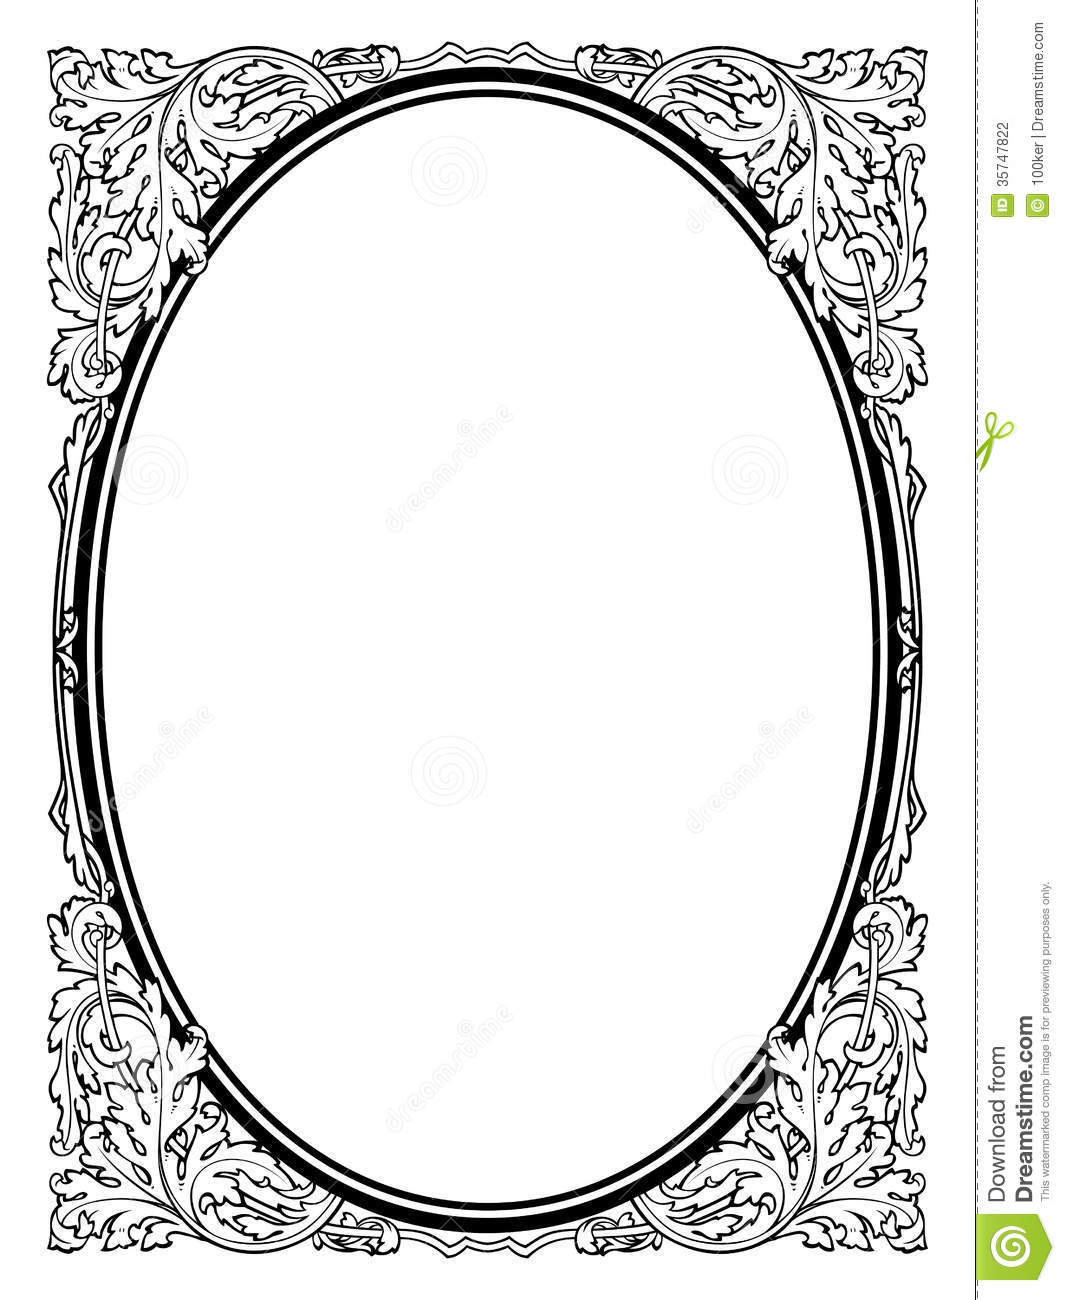 calligraphy penmanship oval baroque frame black stock vector illustration of deco arabesque. Black Bedroom Furniture Sets. Home Design Ideas